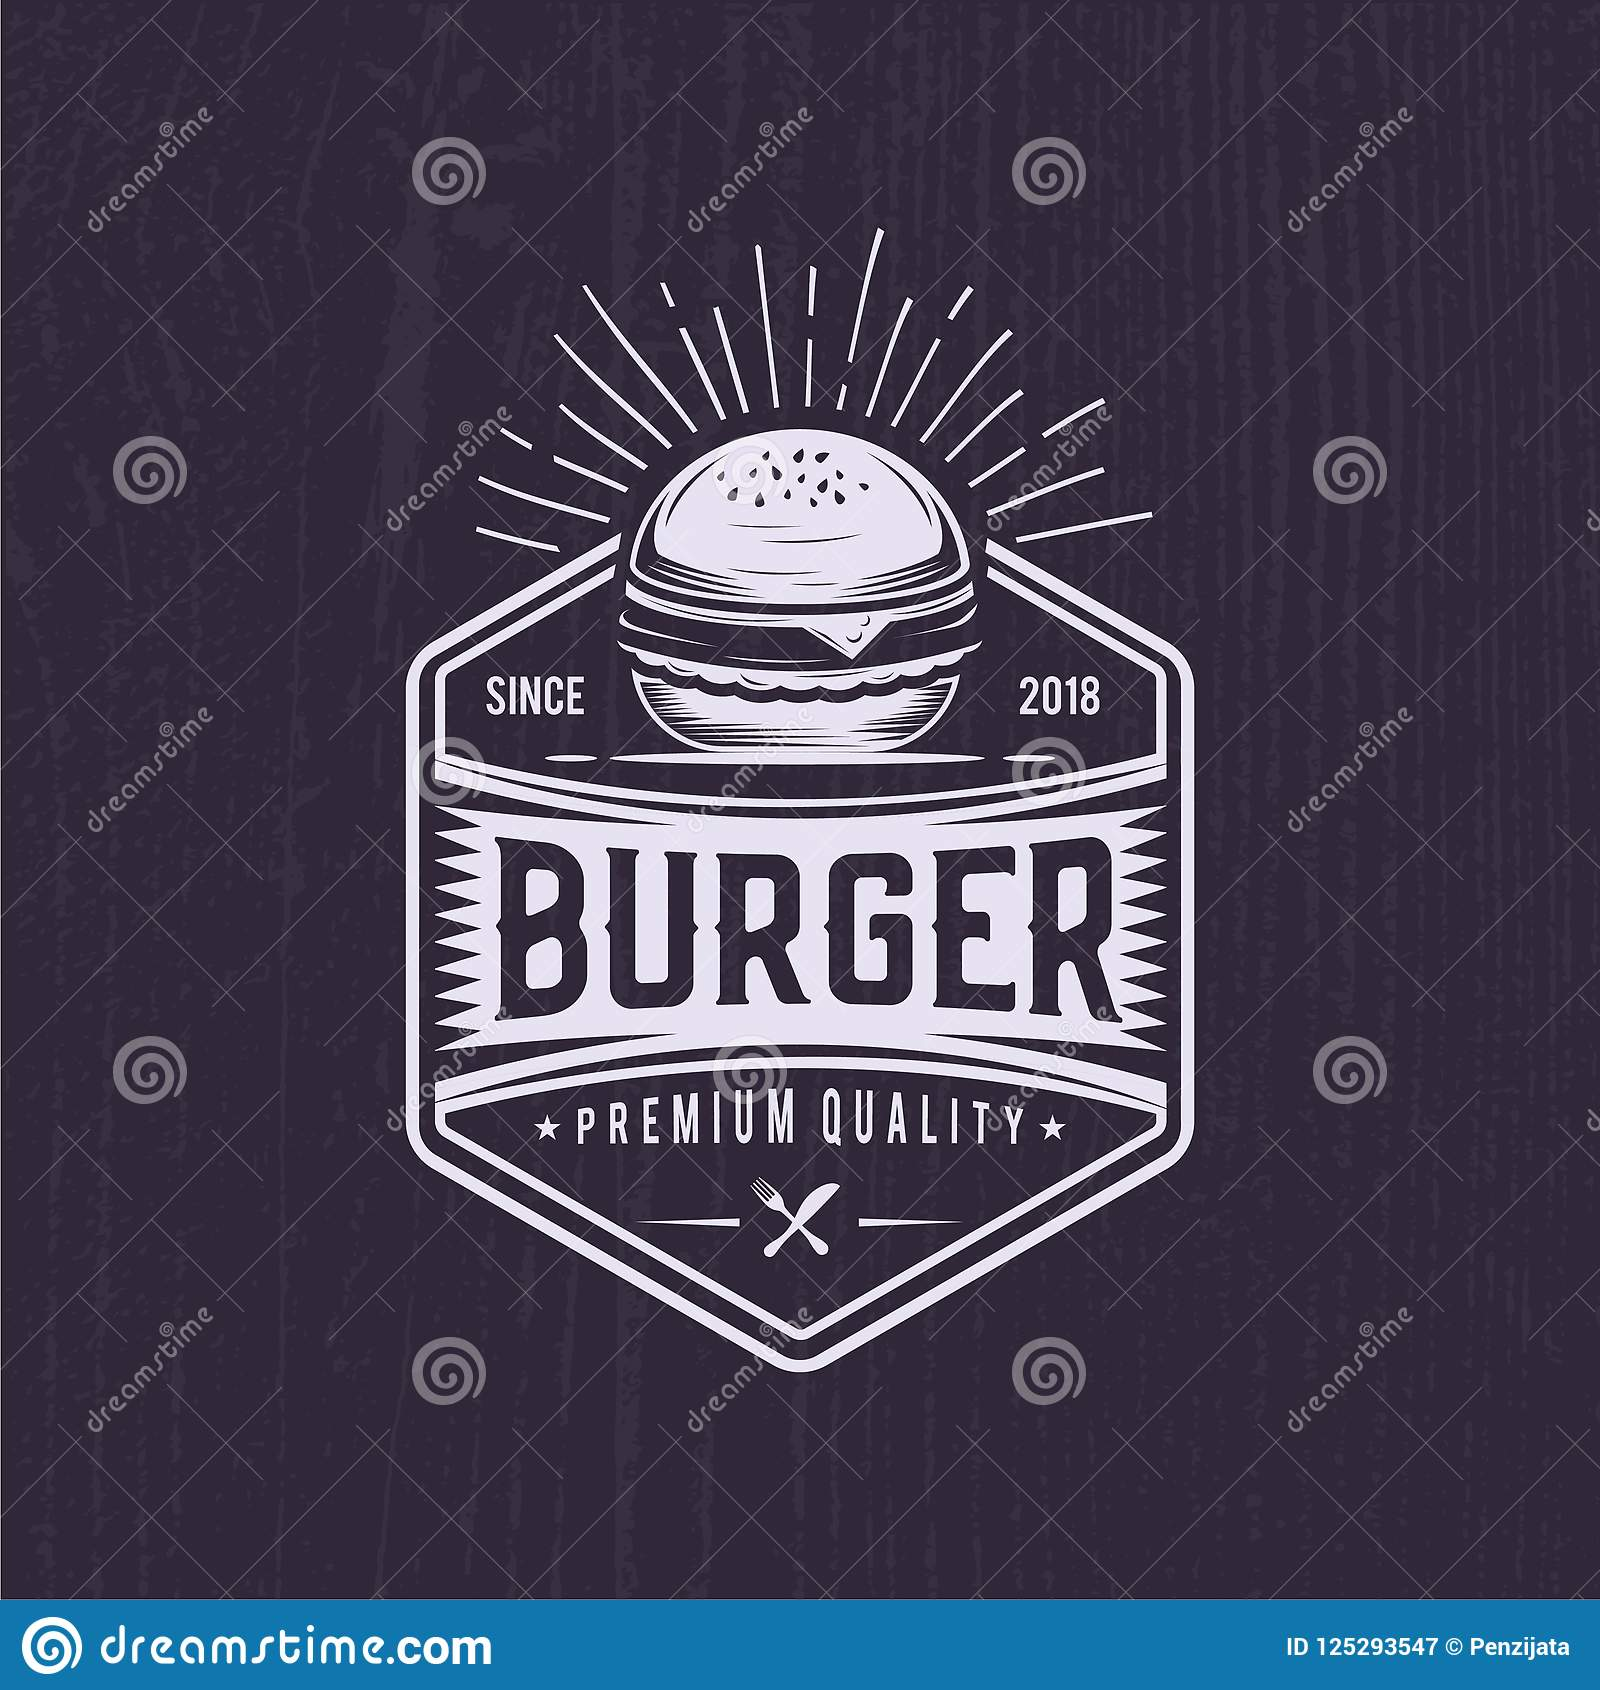 Retro Burger Joint Vintage Fast Food Illustration Logo Cheeseburger Design Stock Illustration Illustration Of Joint Print 125293547